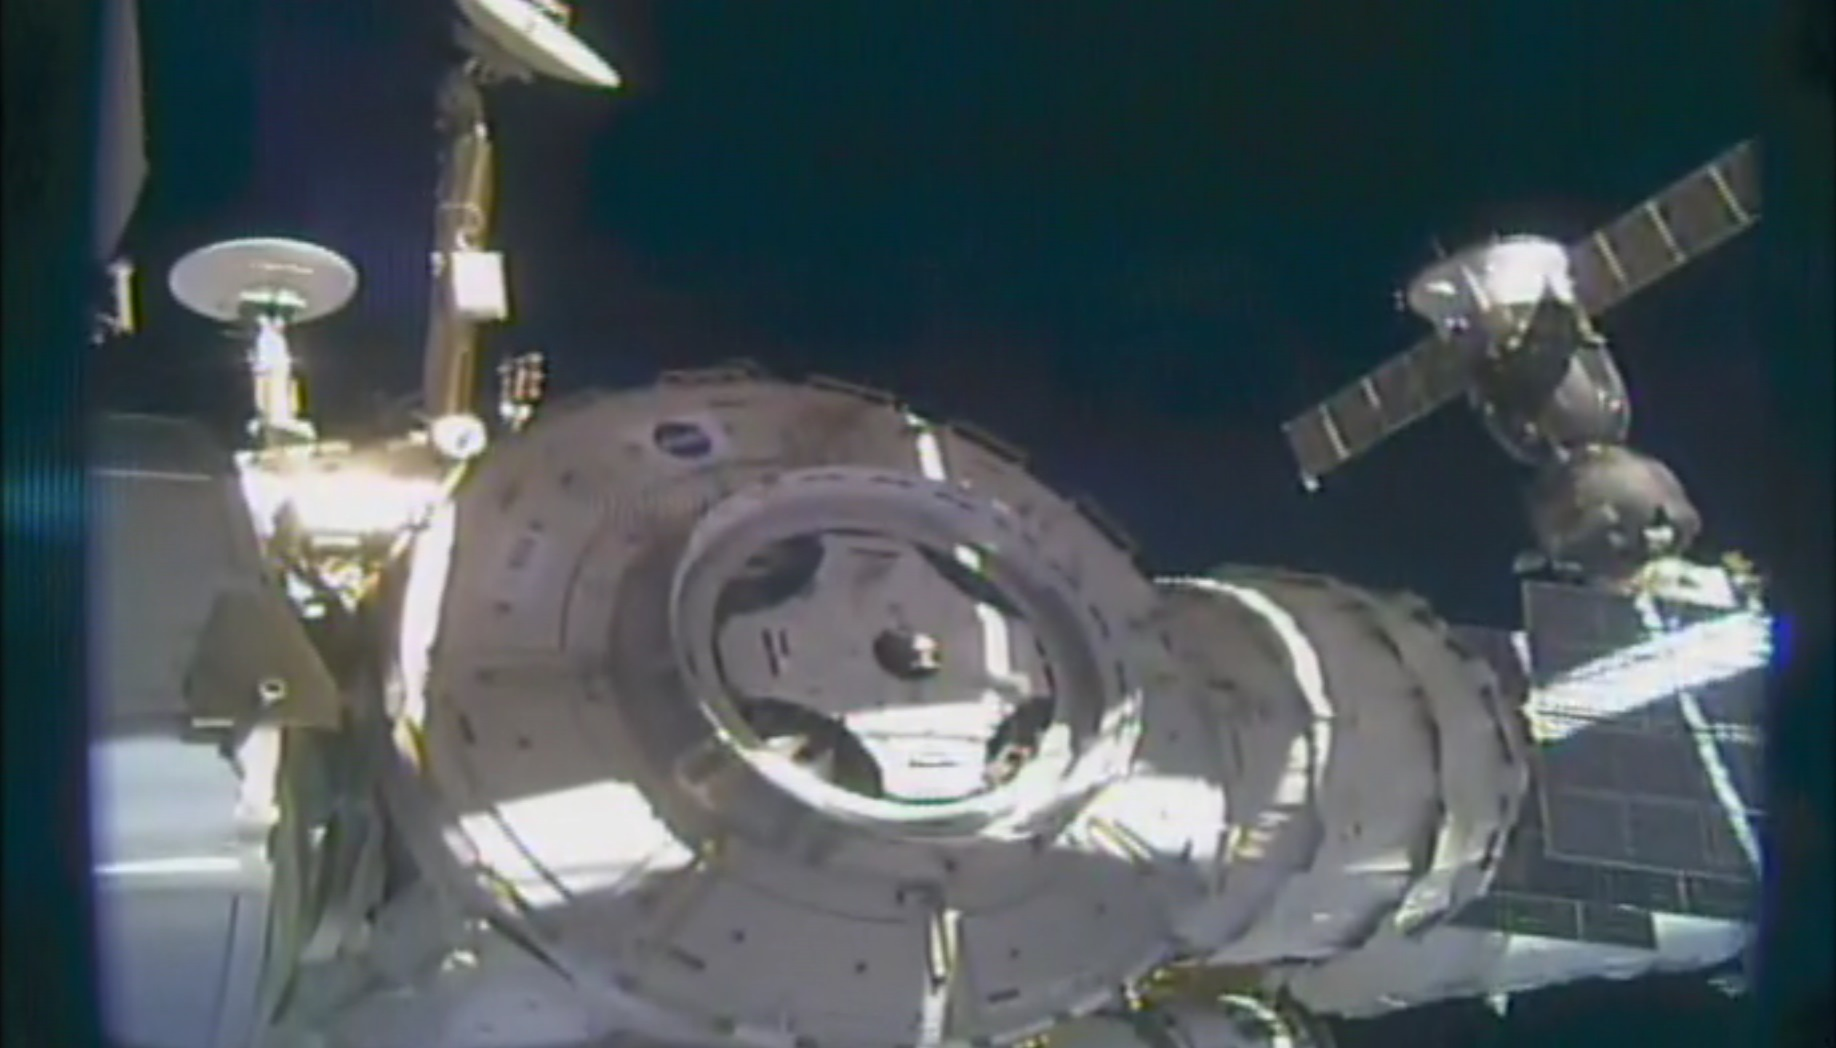 Iss Docking Module Relocates To Establish Second